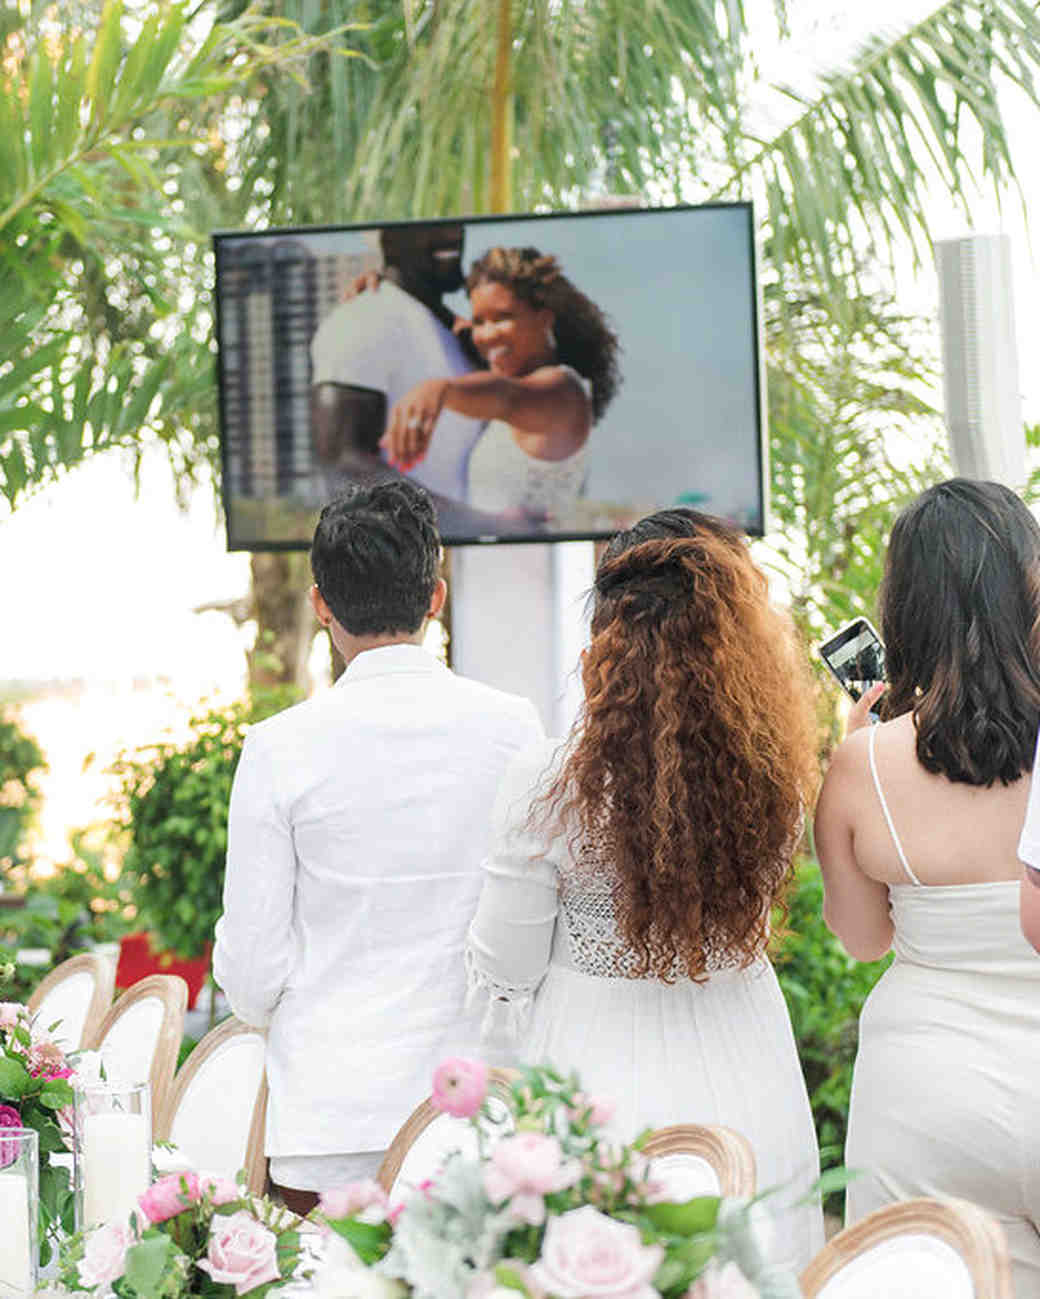 guests watching couple proposal video